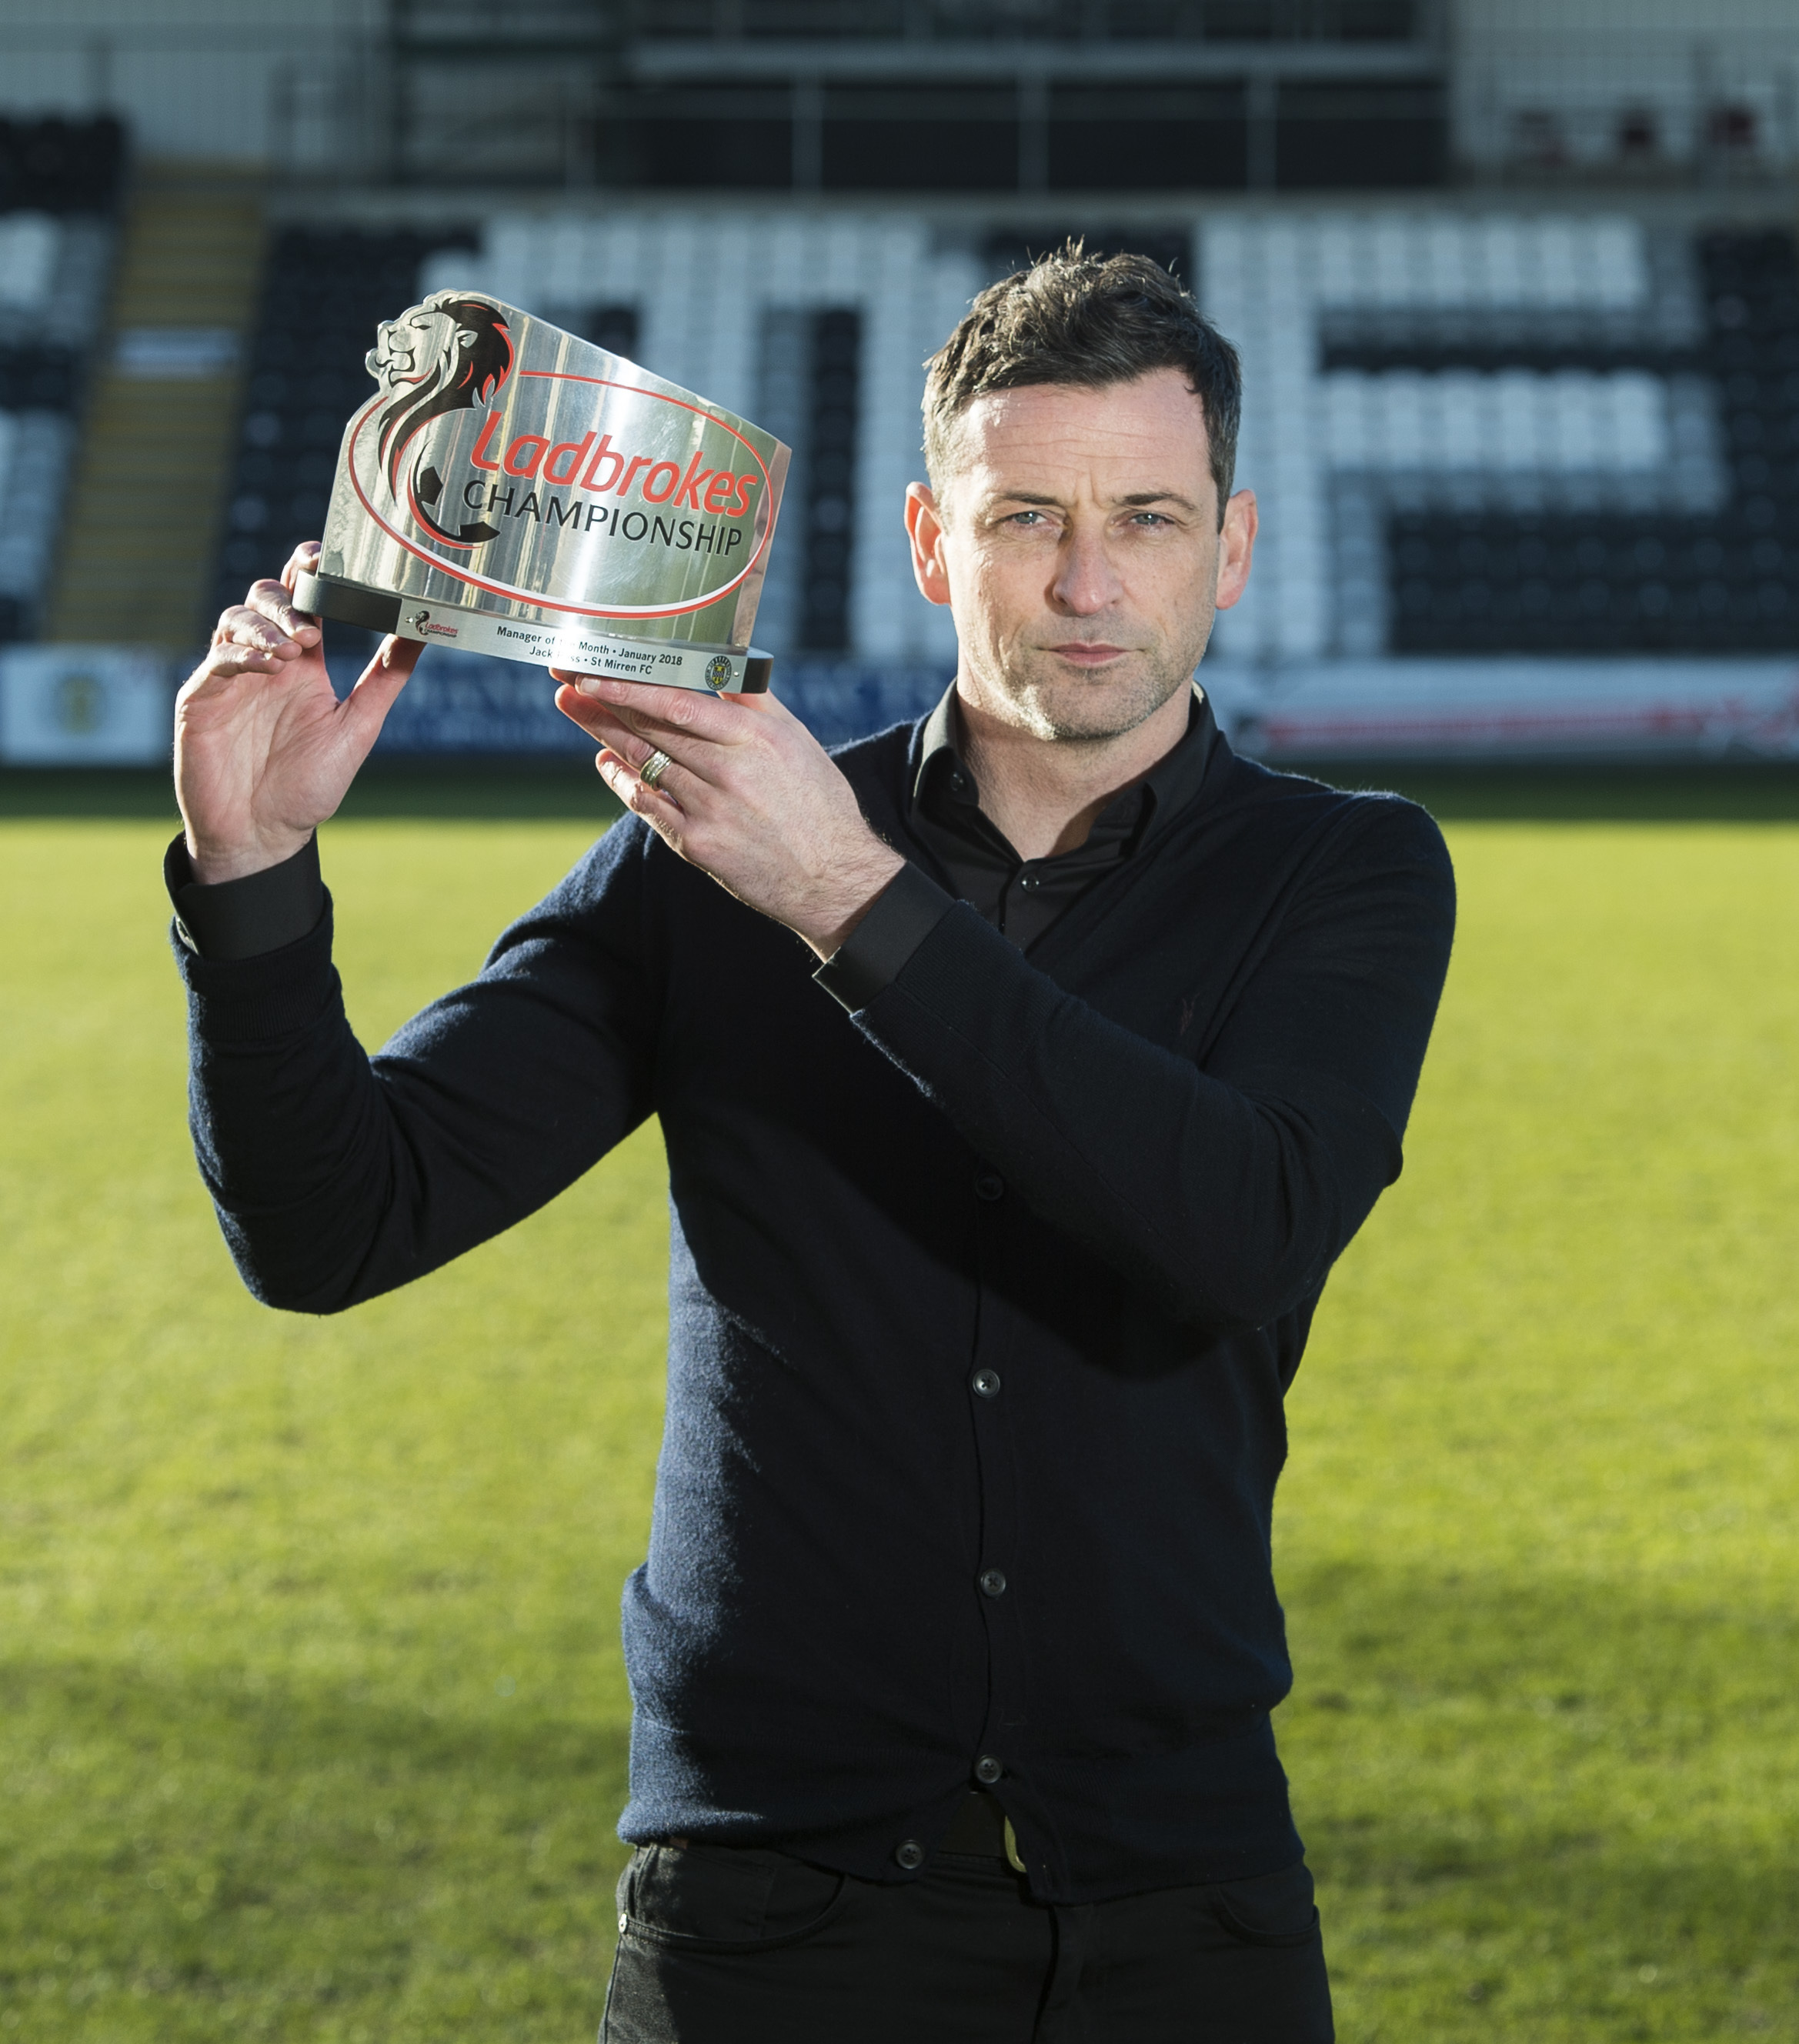 06/02/18 . PAISLEY 2021 STADIUM - PAISLEY. St Mirren manager Jack Ross wins the Ladbrokes Championship Manager of the Month Award for January.